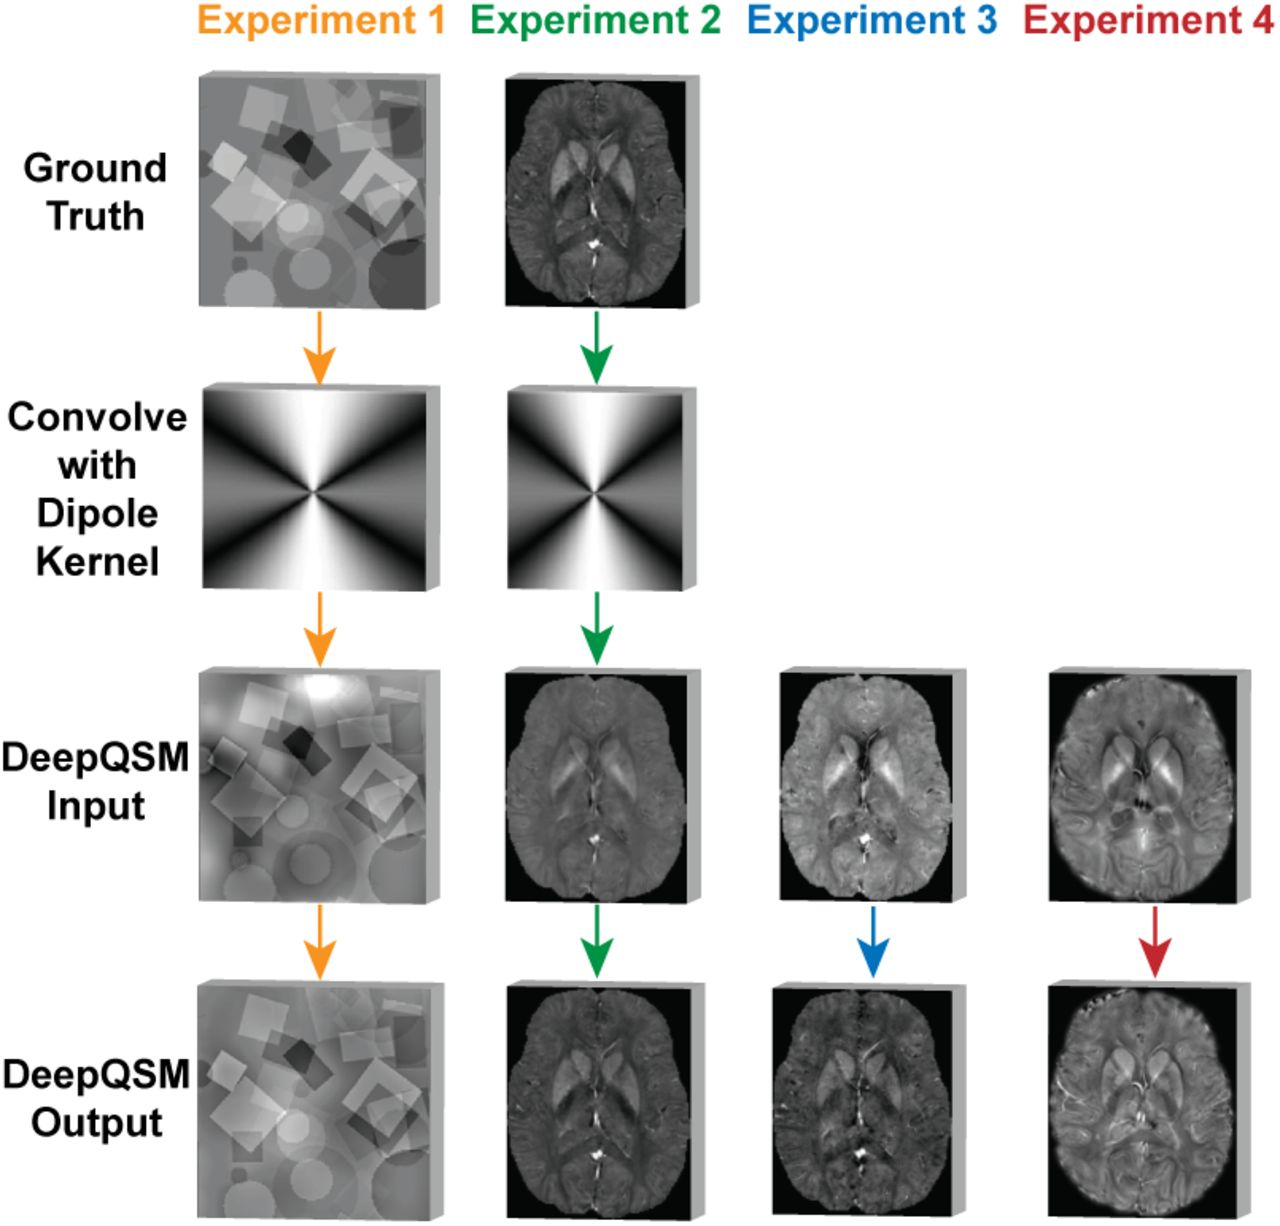 DeepQSM - Using Deep Learning to Solve the Dipole Inversion for MRI